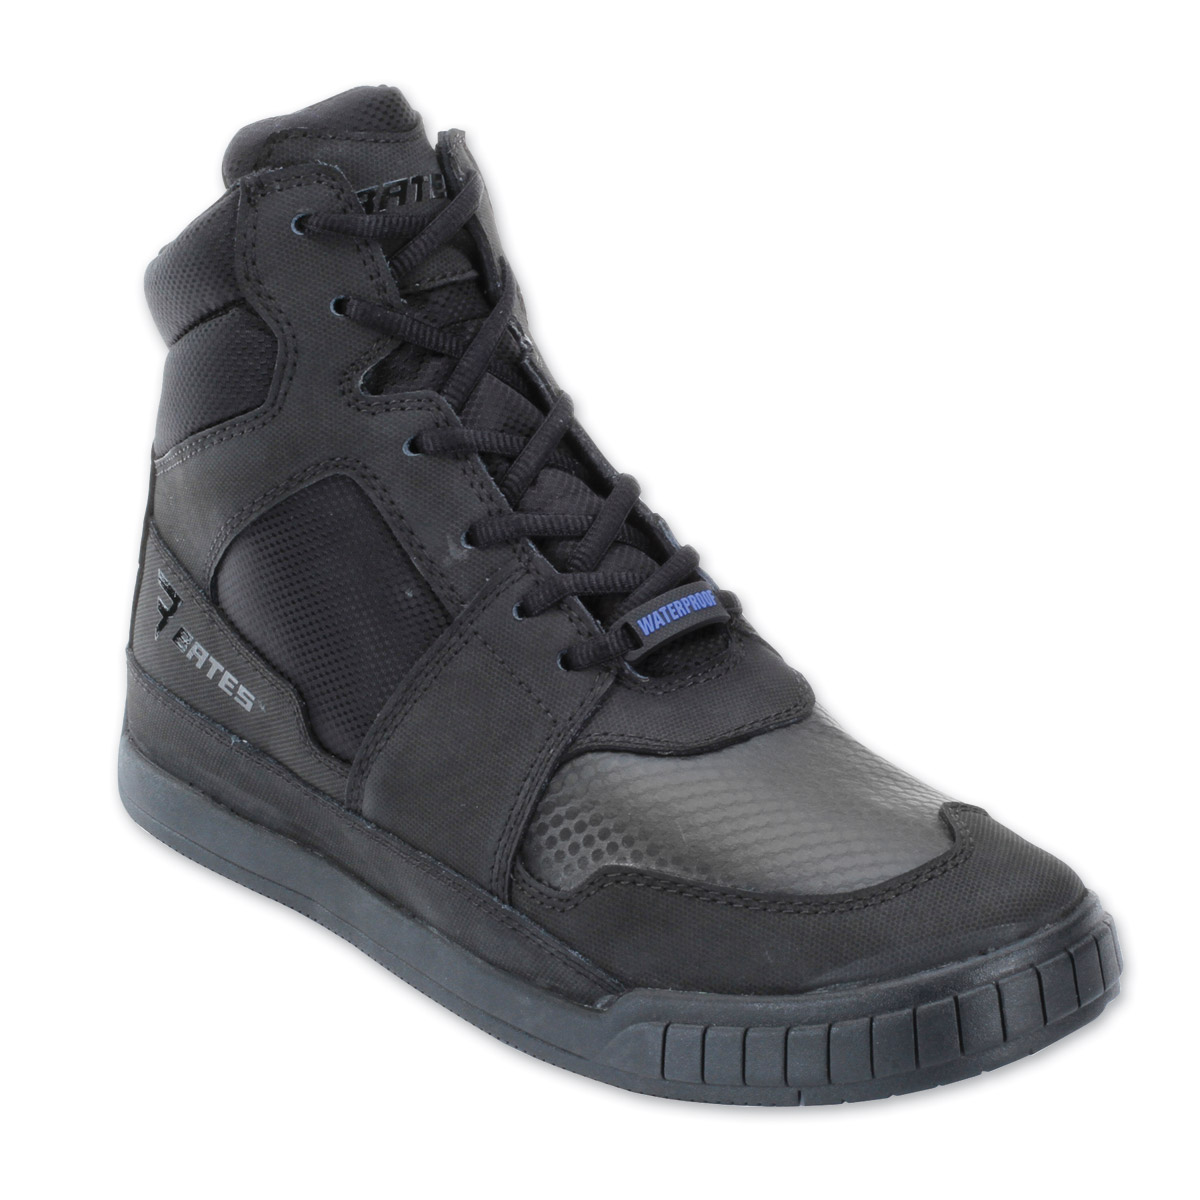 Bates Men's Marauder Black Leather/Nylon Boots